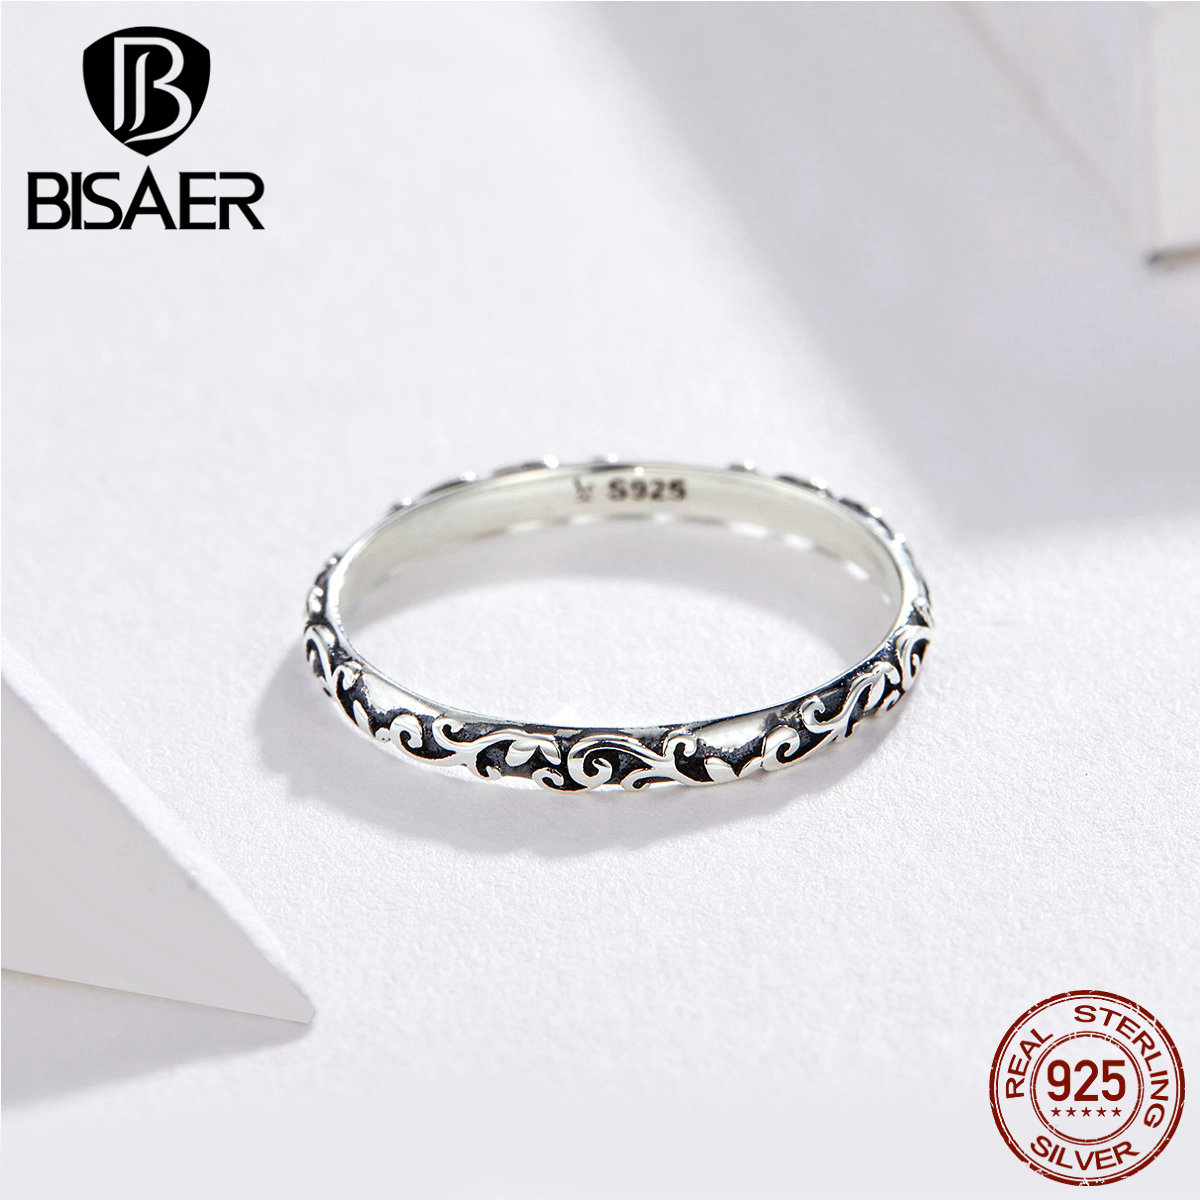 BISAER 925 Sterling Silver Vintage Rings For Women Retro Flower Finger Ring Luxury European Female Fashion Jewelry Bijoux GXR513